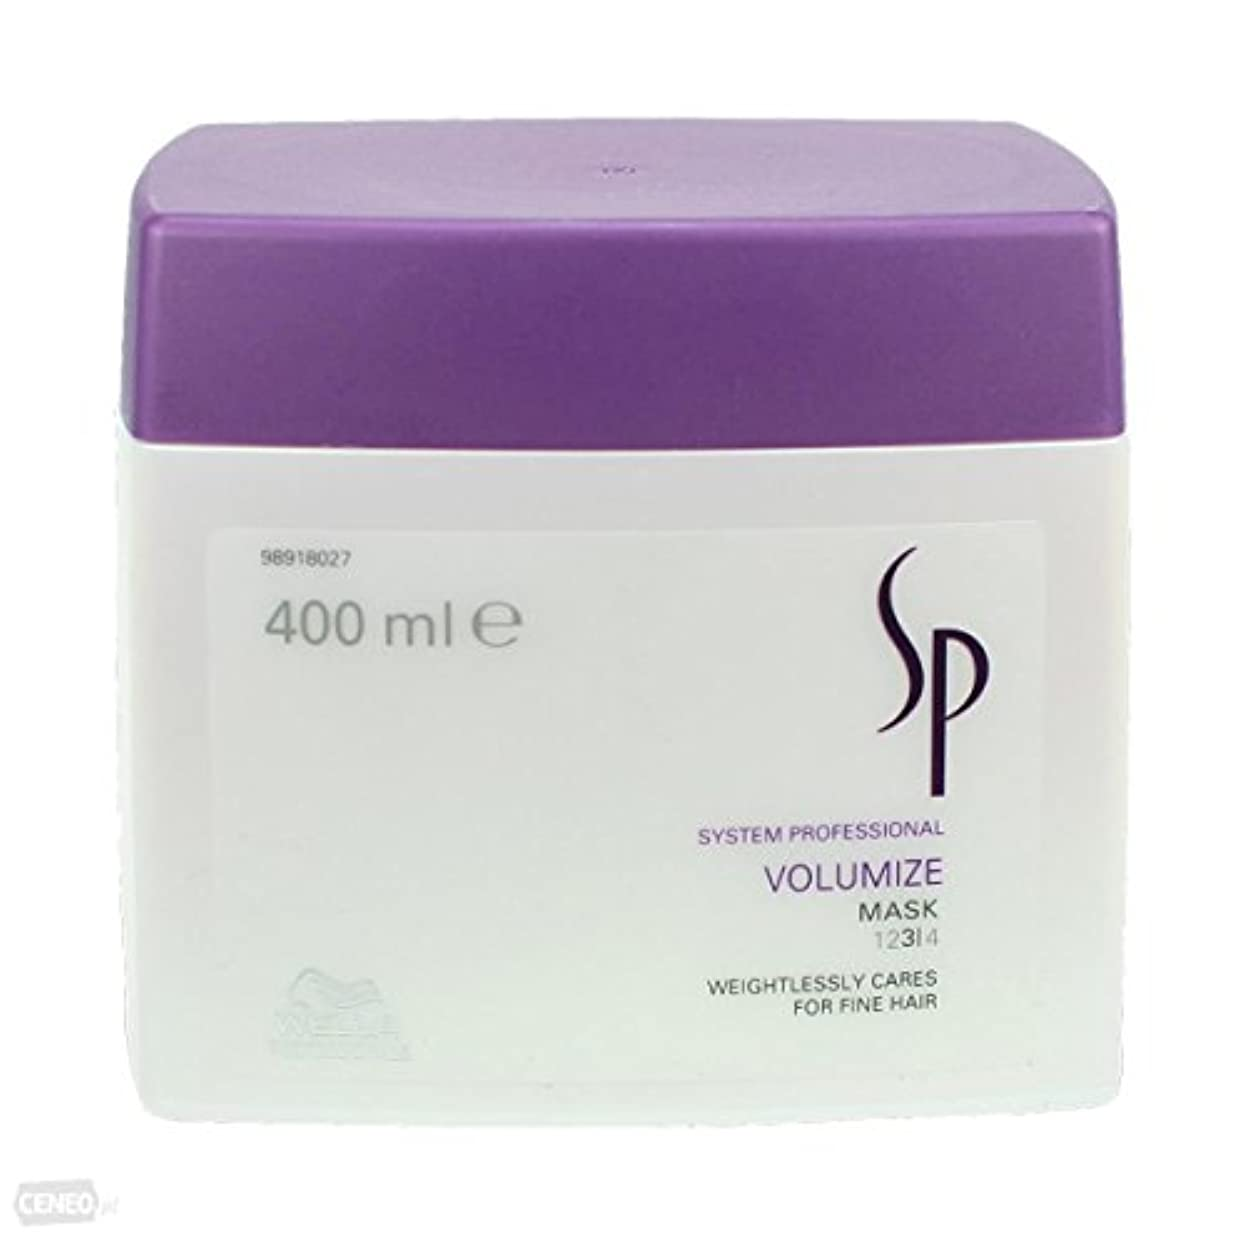 廊下統合する目を覚ますWella SP Volumize Mask ( For Fine Hair ) - 400ml/13.33oz by Wella [並行輸入品]